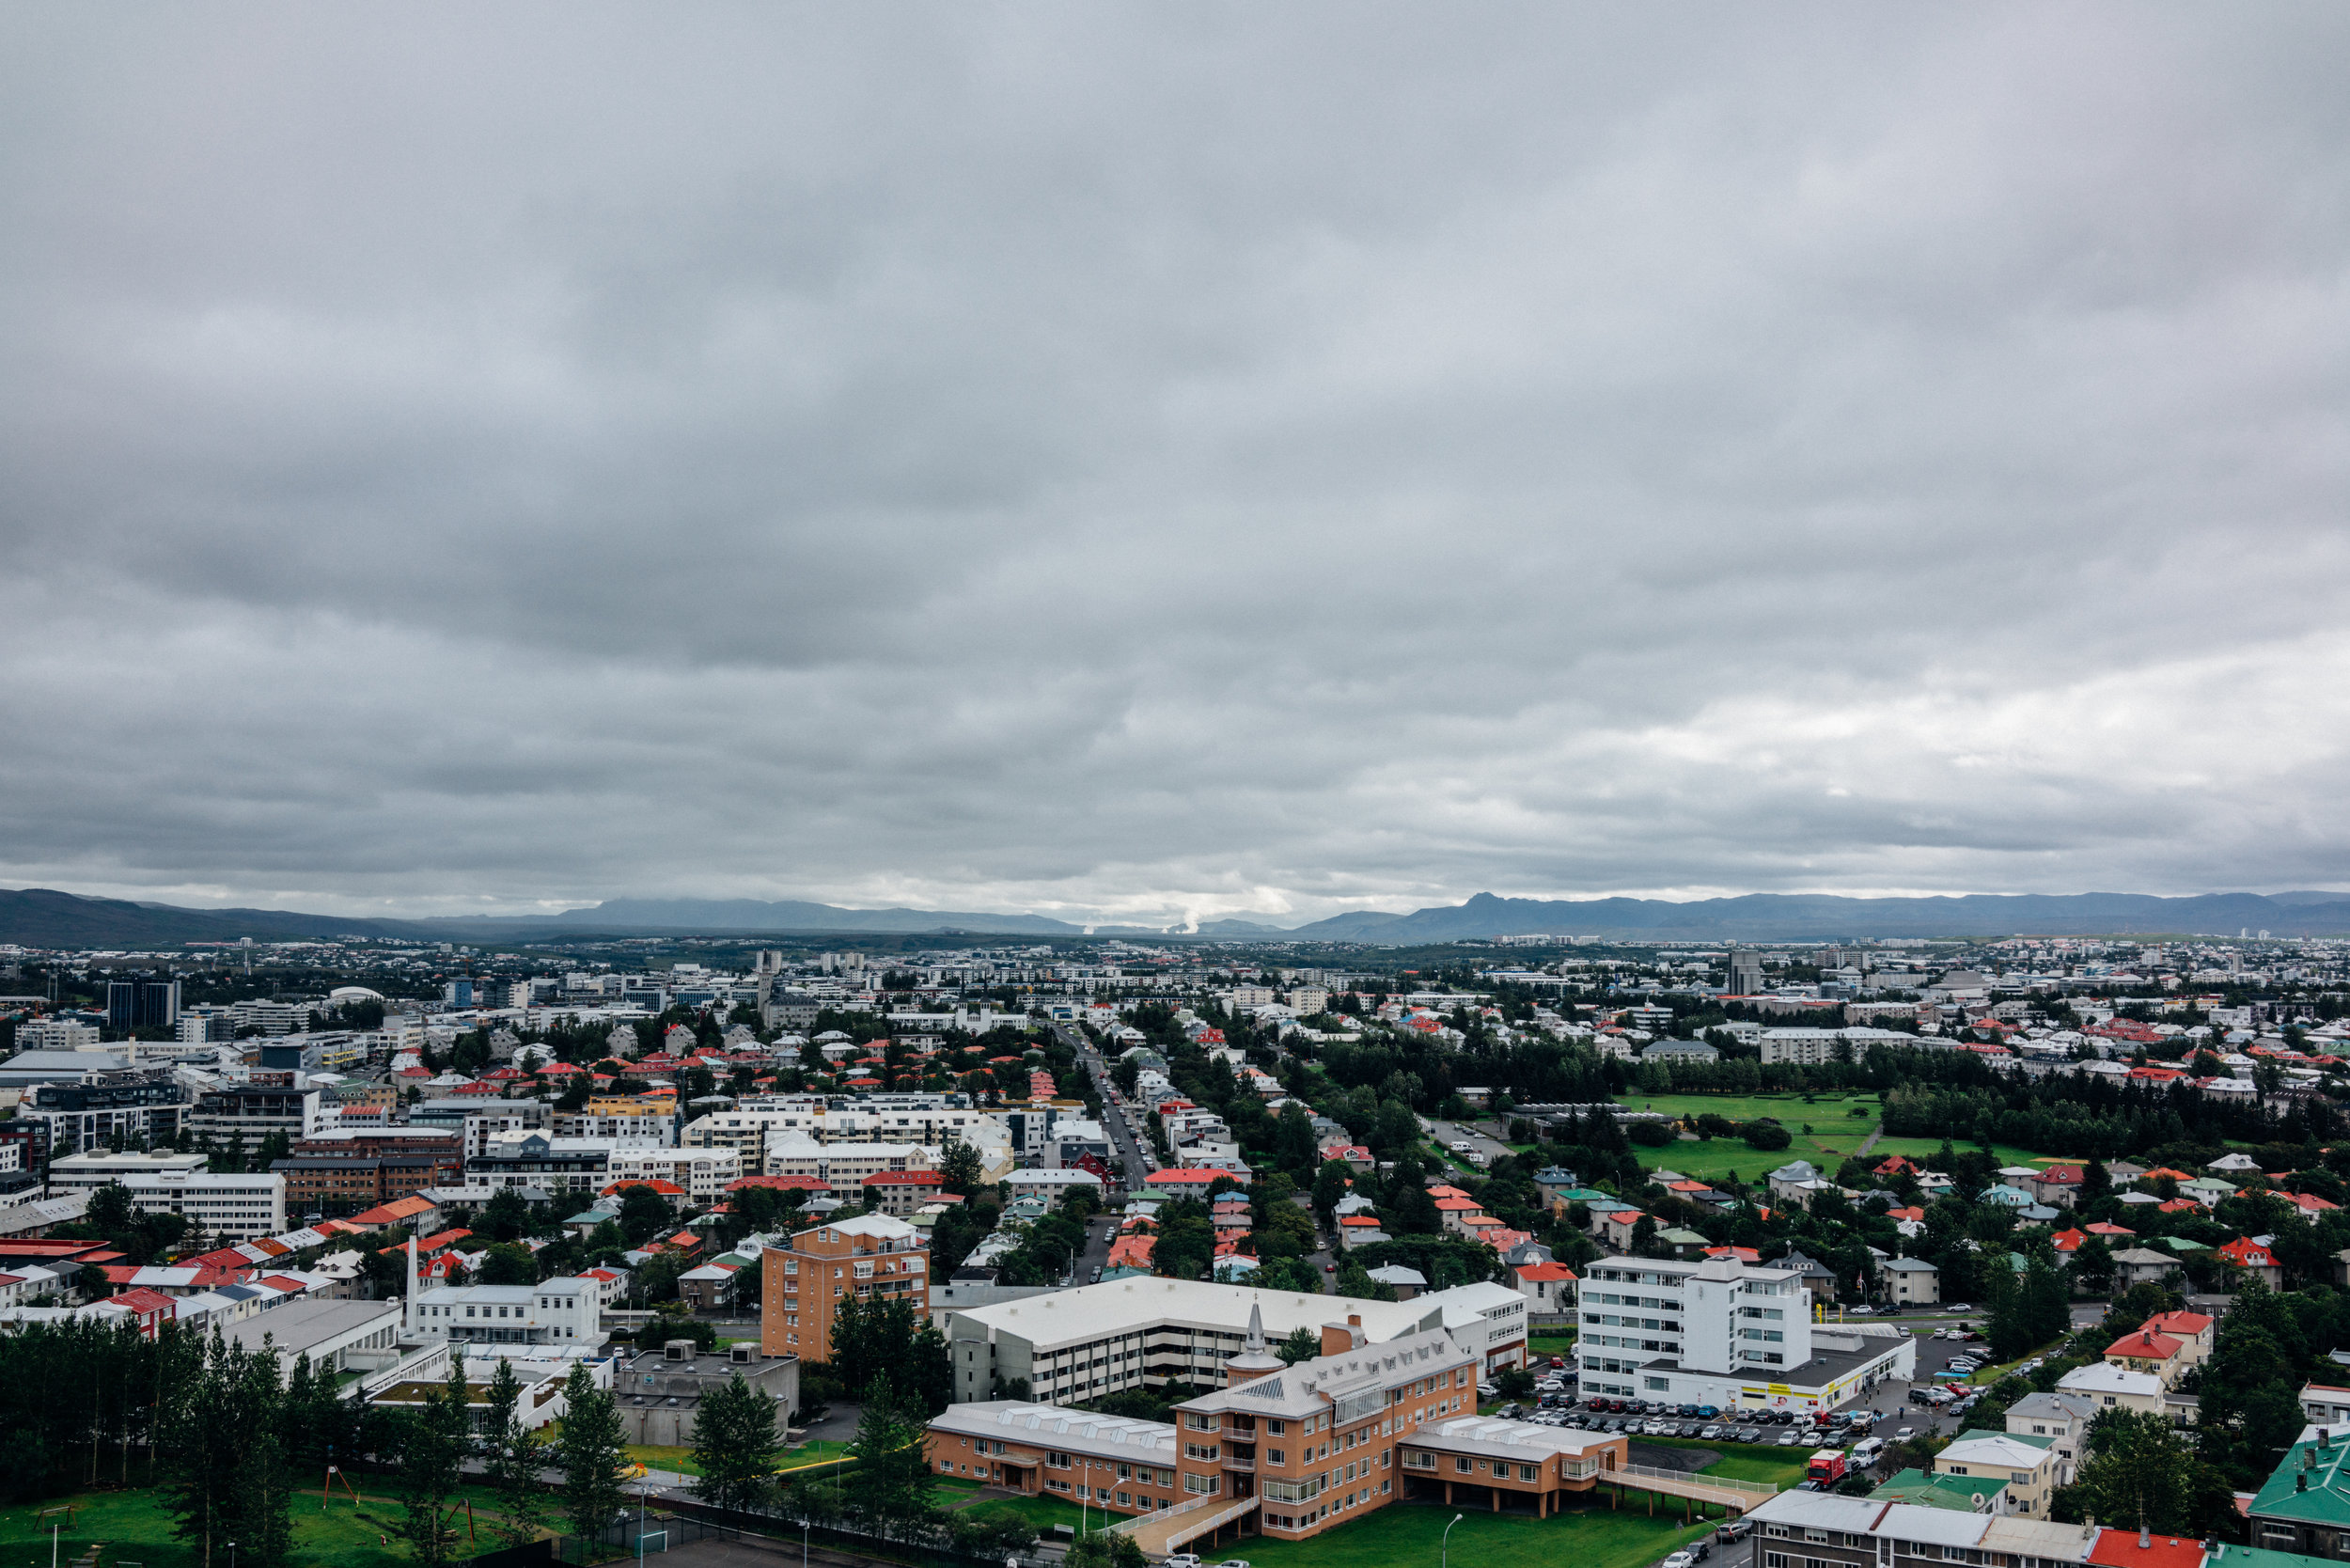 View of Reykjavík from Hallgrímskirkja, a curious looking Lutheran parish church